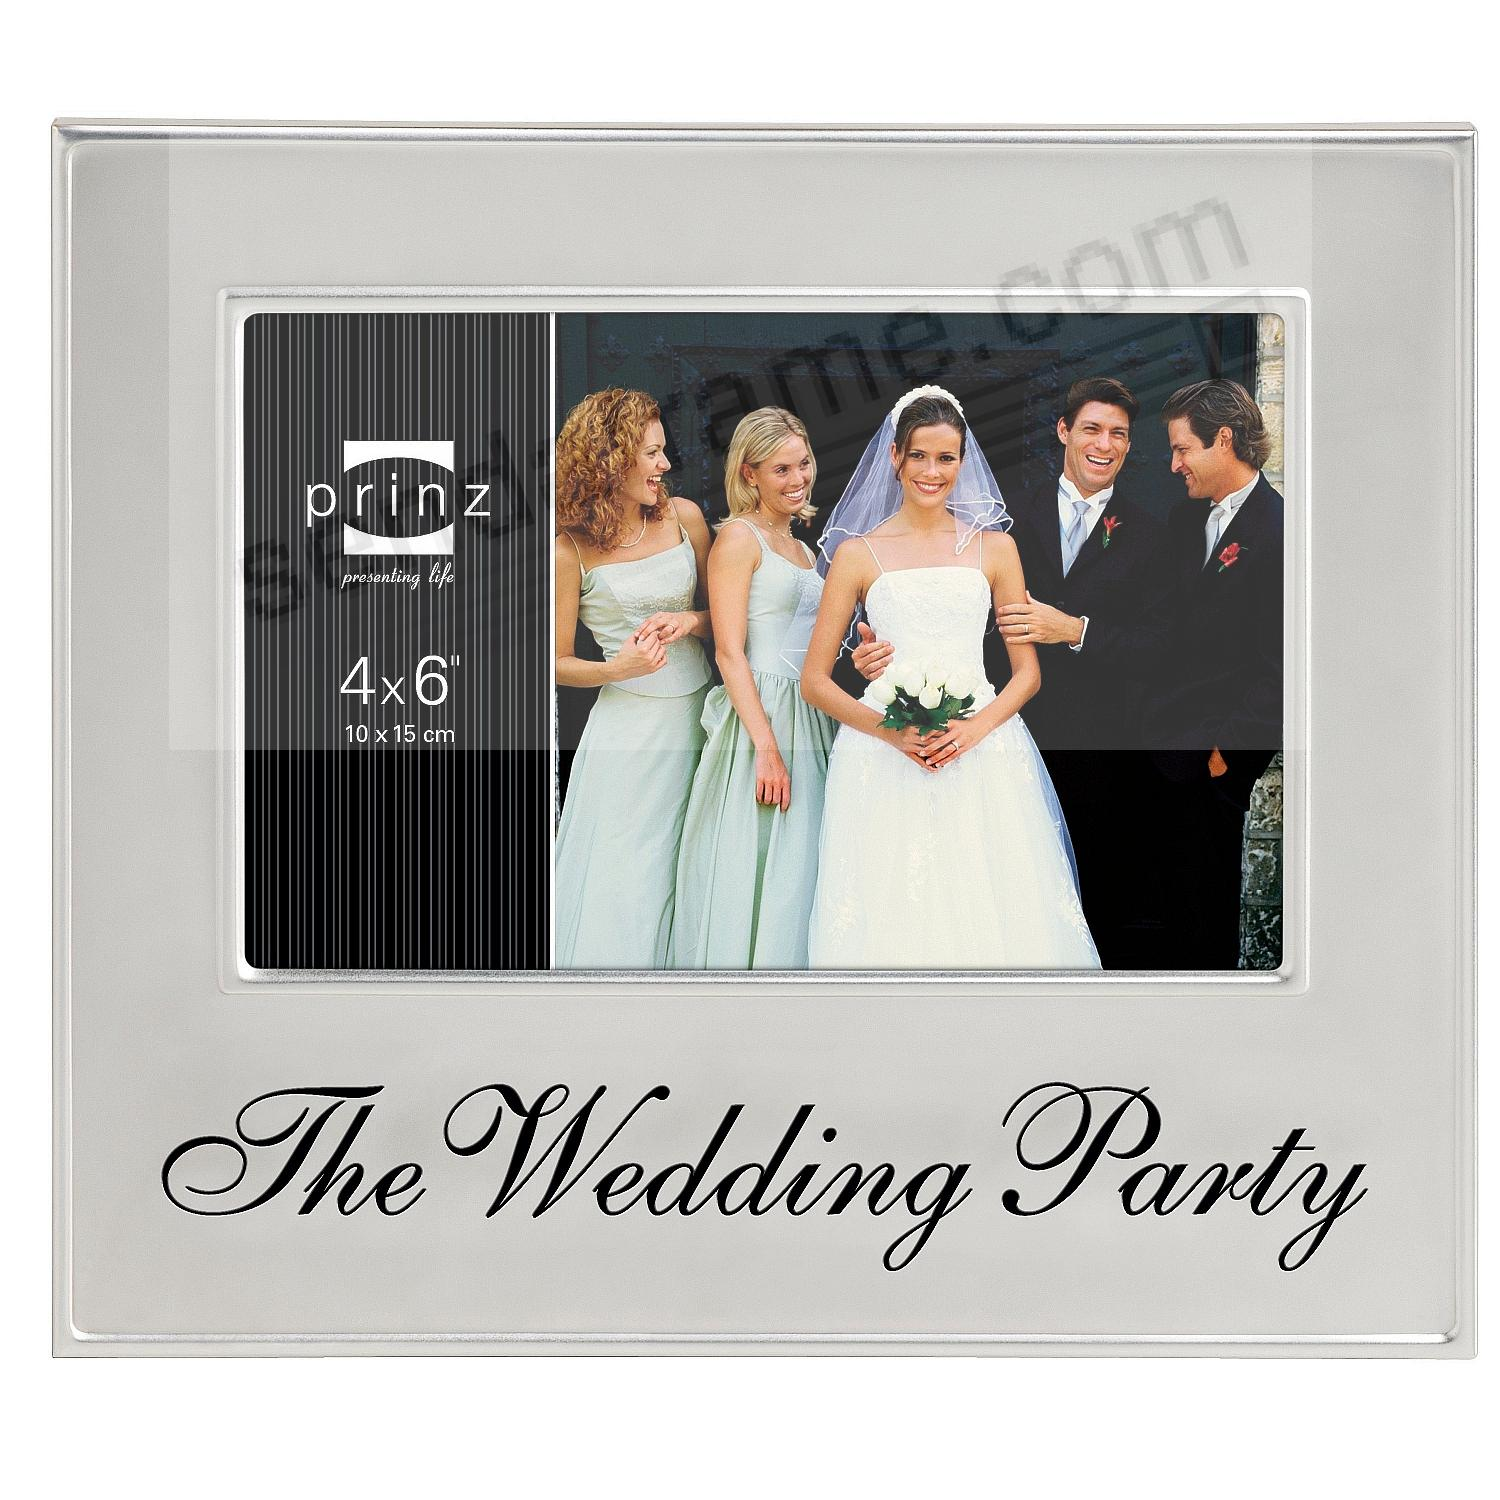 THE WEDDING PARTY frame by Prinz® - Picture Frames, Photo Albums ...